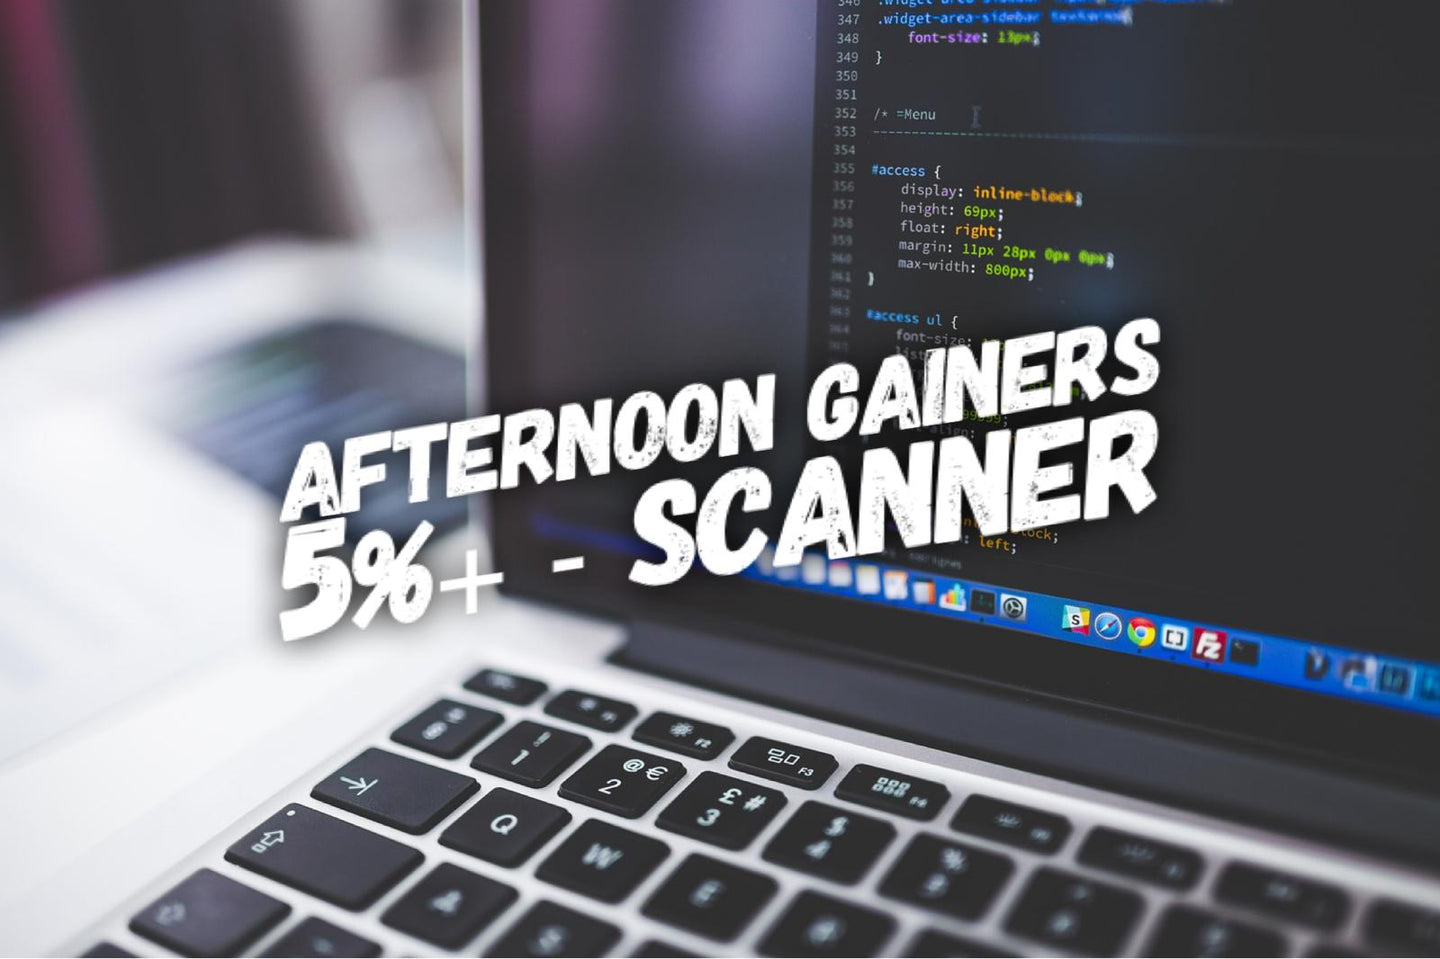 Afternoon Gainers 5%+ -- Scanner (One Time Fee)